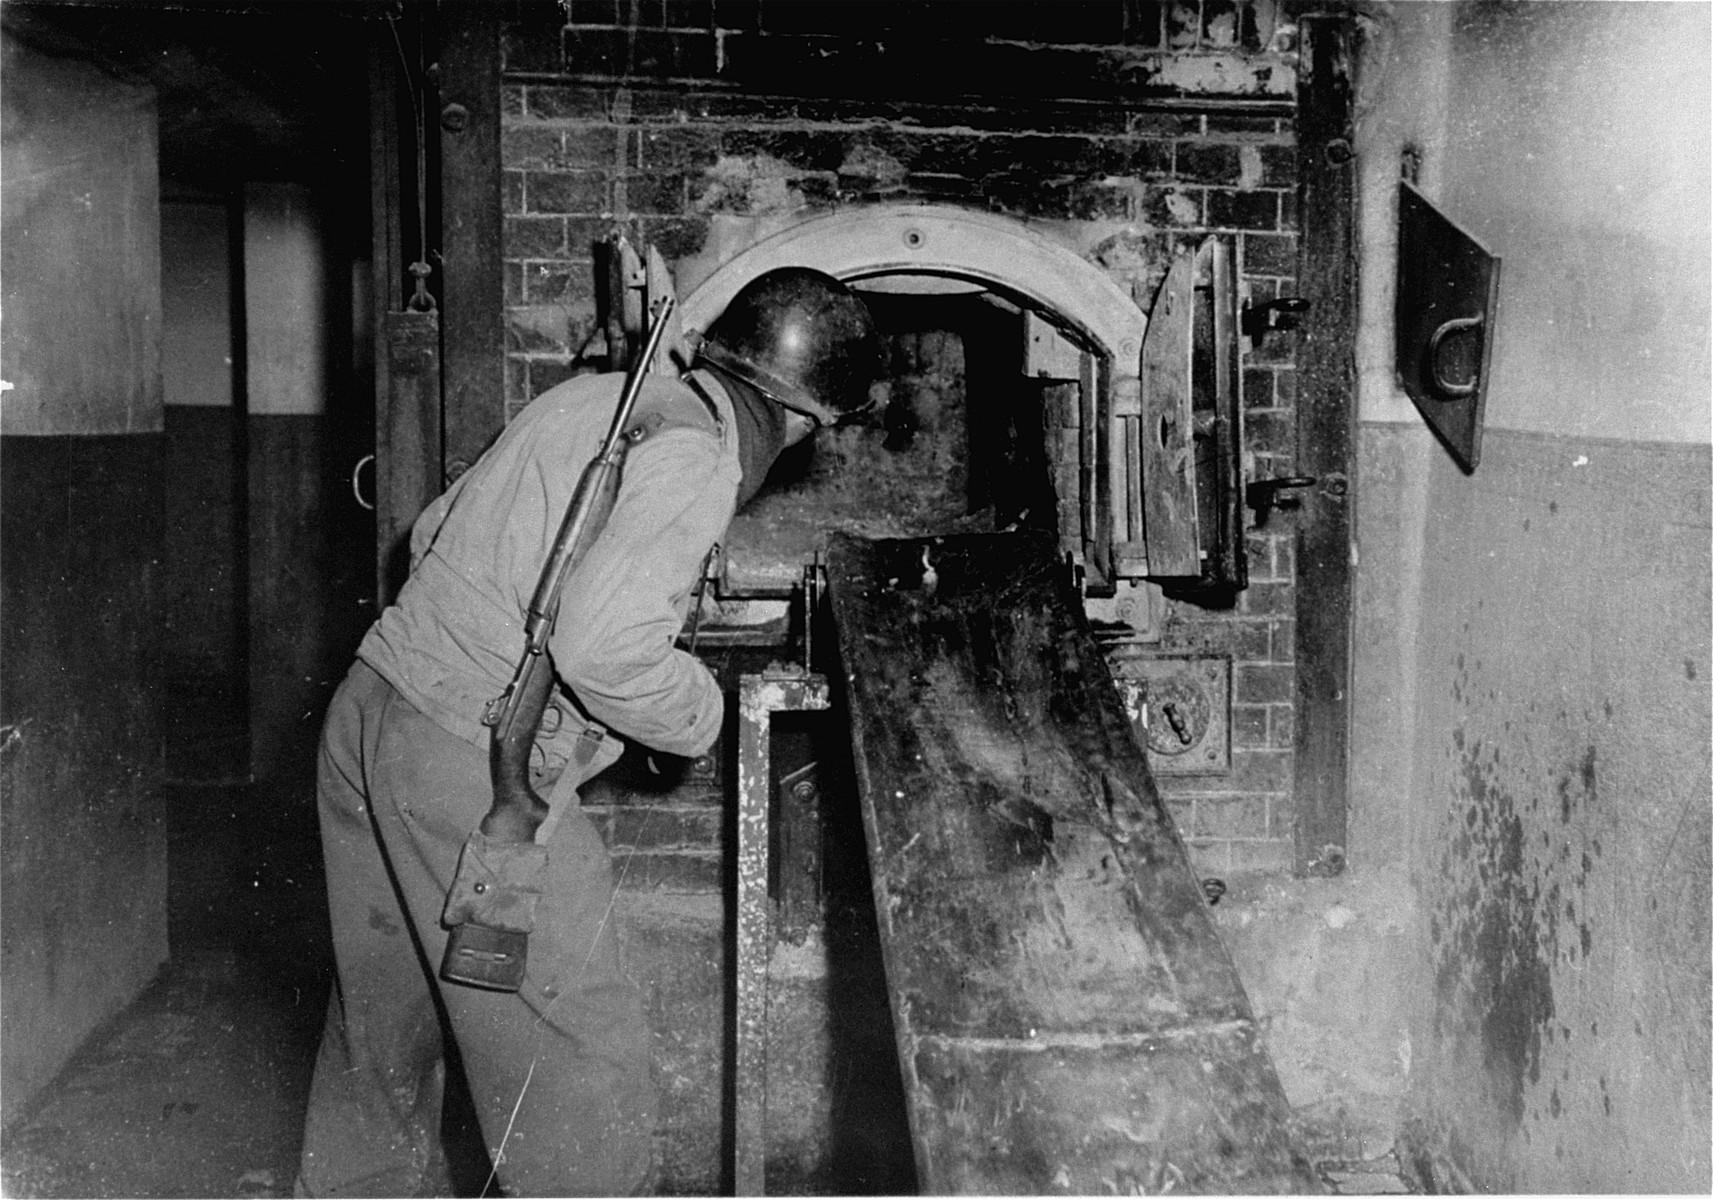 An American soldier peers into an oven that has been cleaned of human remains.